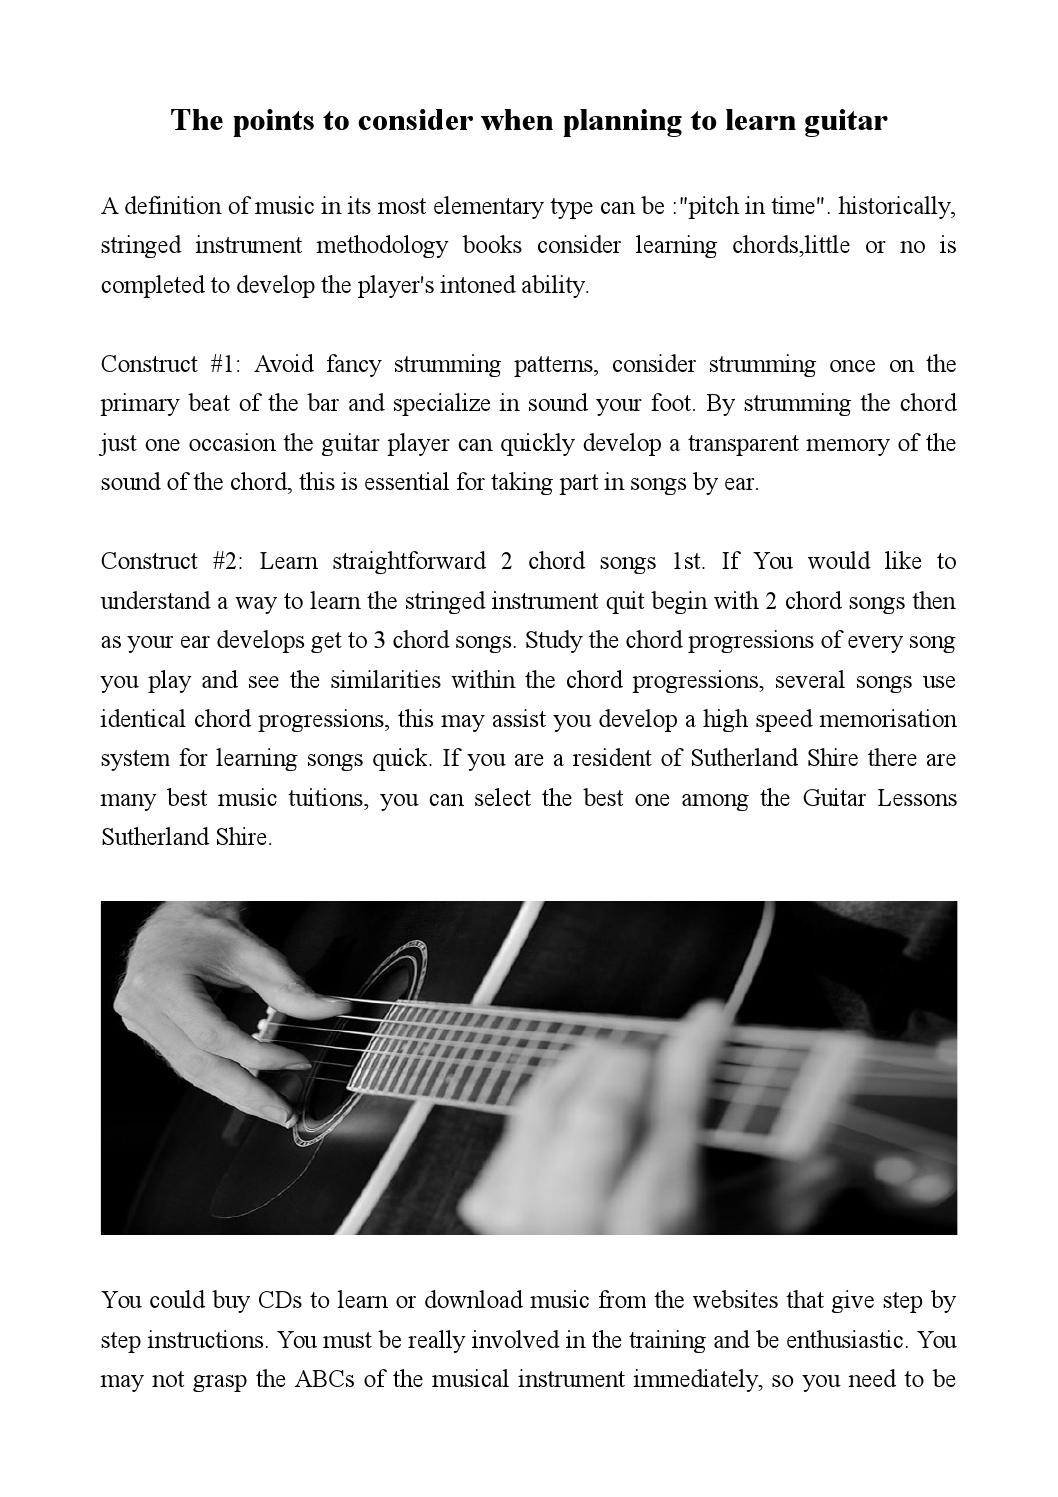 The Points To Consider When Planning To Learn Guitar By